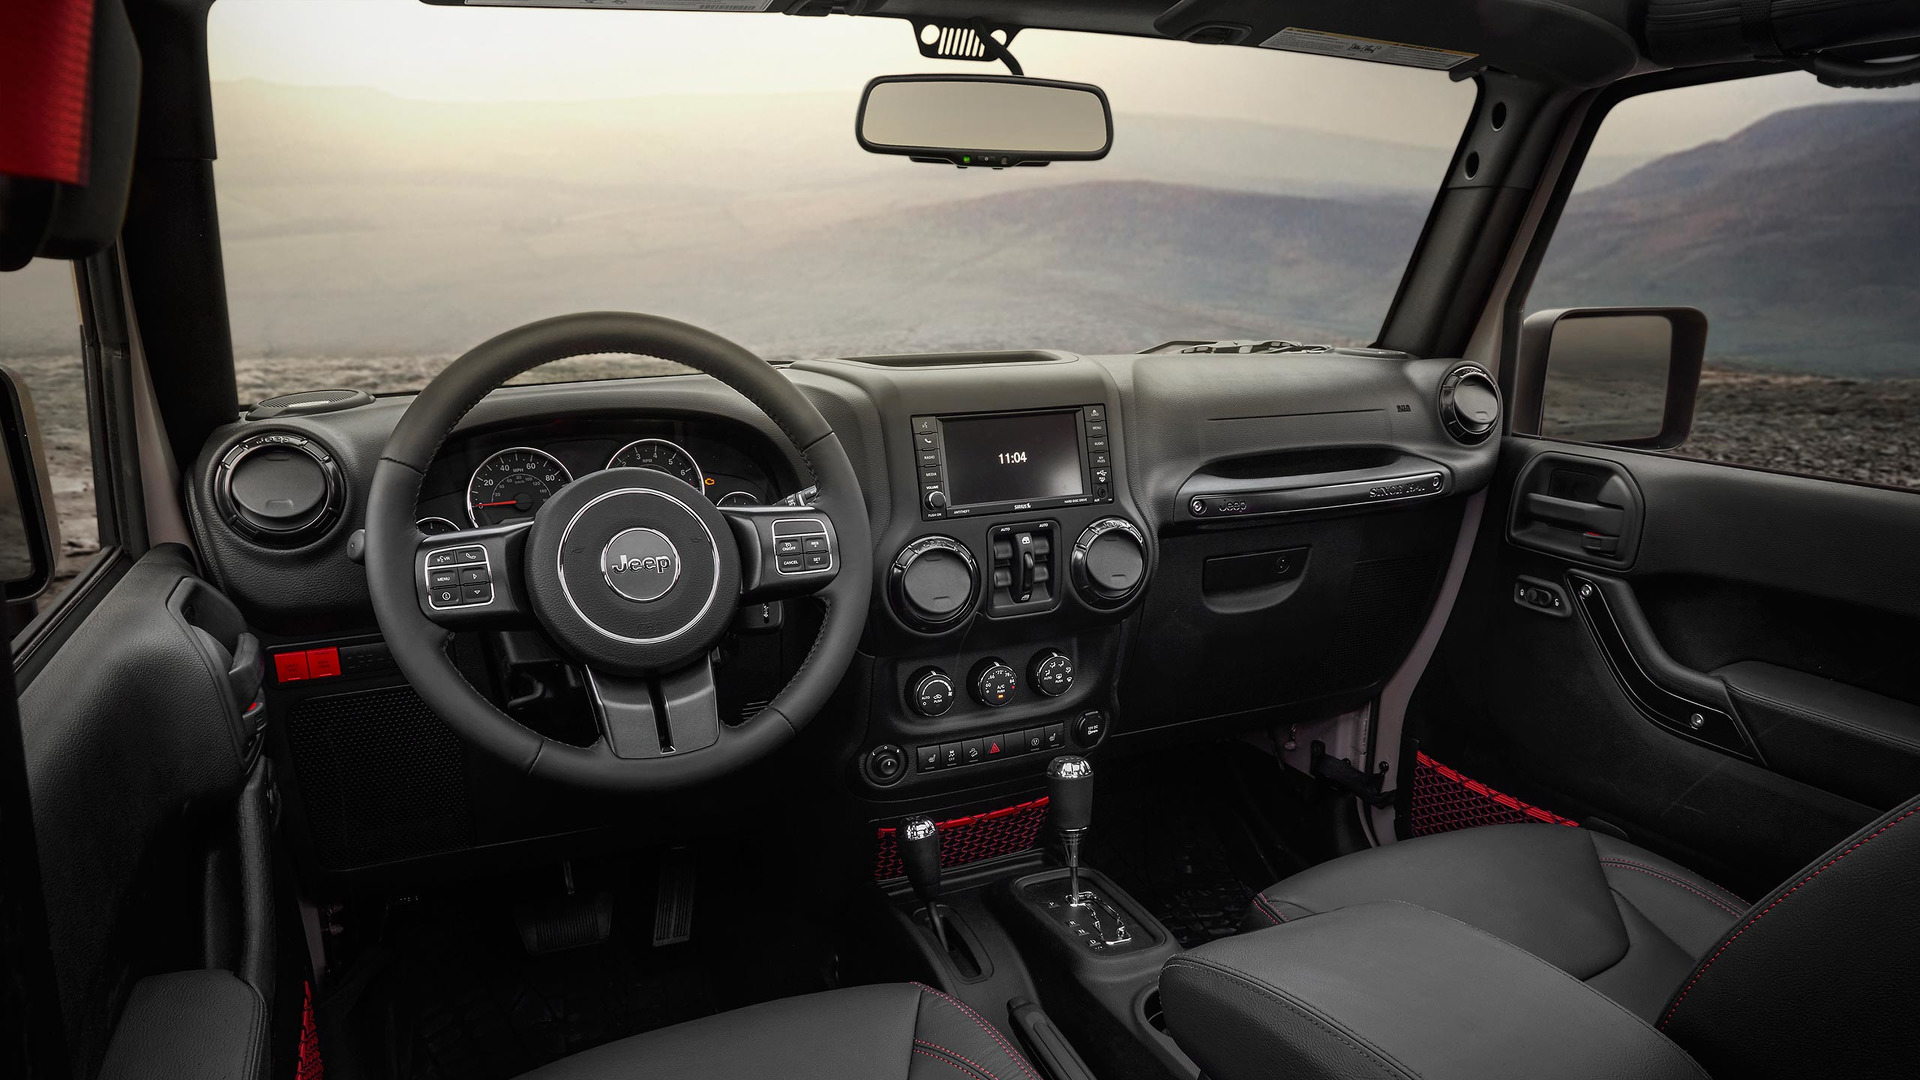 Off Road Jeep >> Jeep Wrangler Rubicon Recon – more capable off-road Image 612445